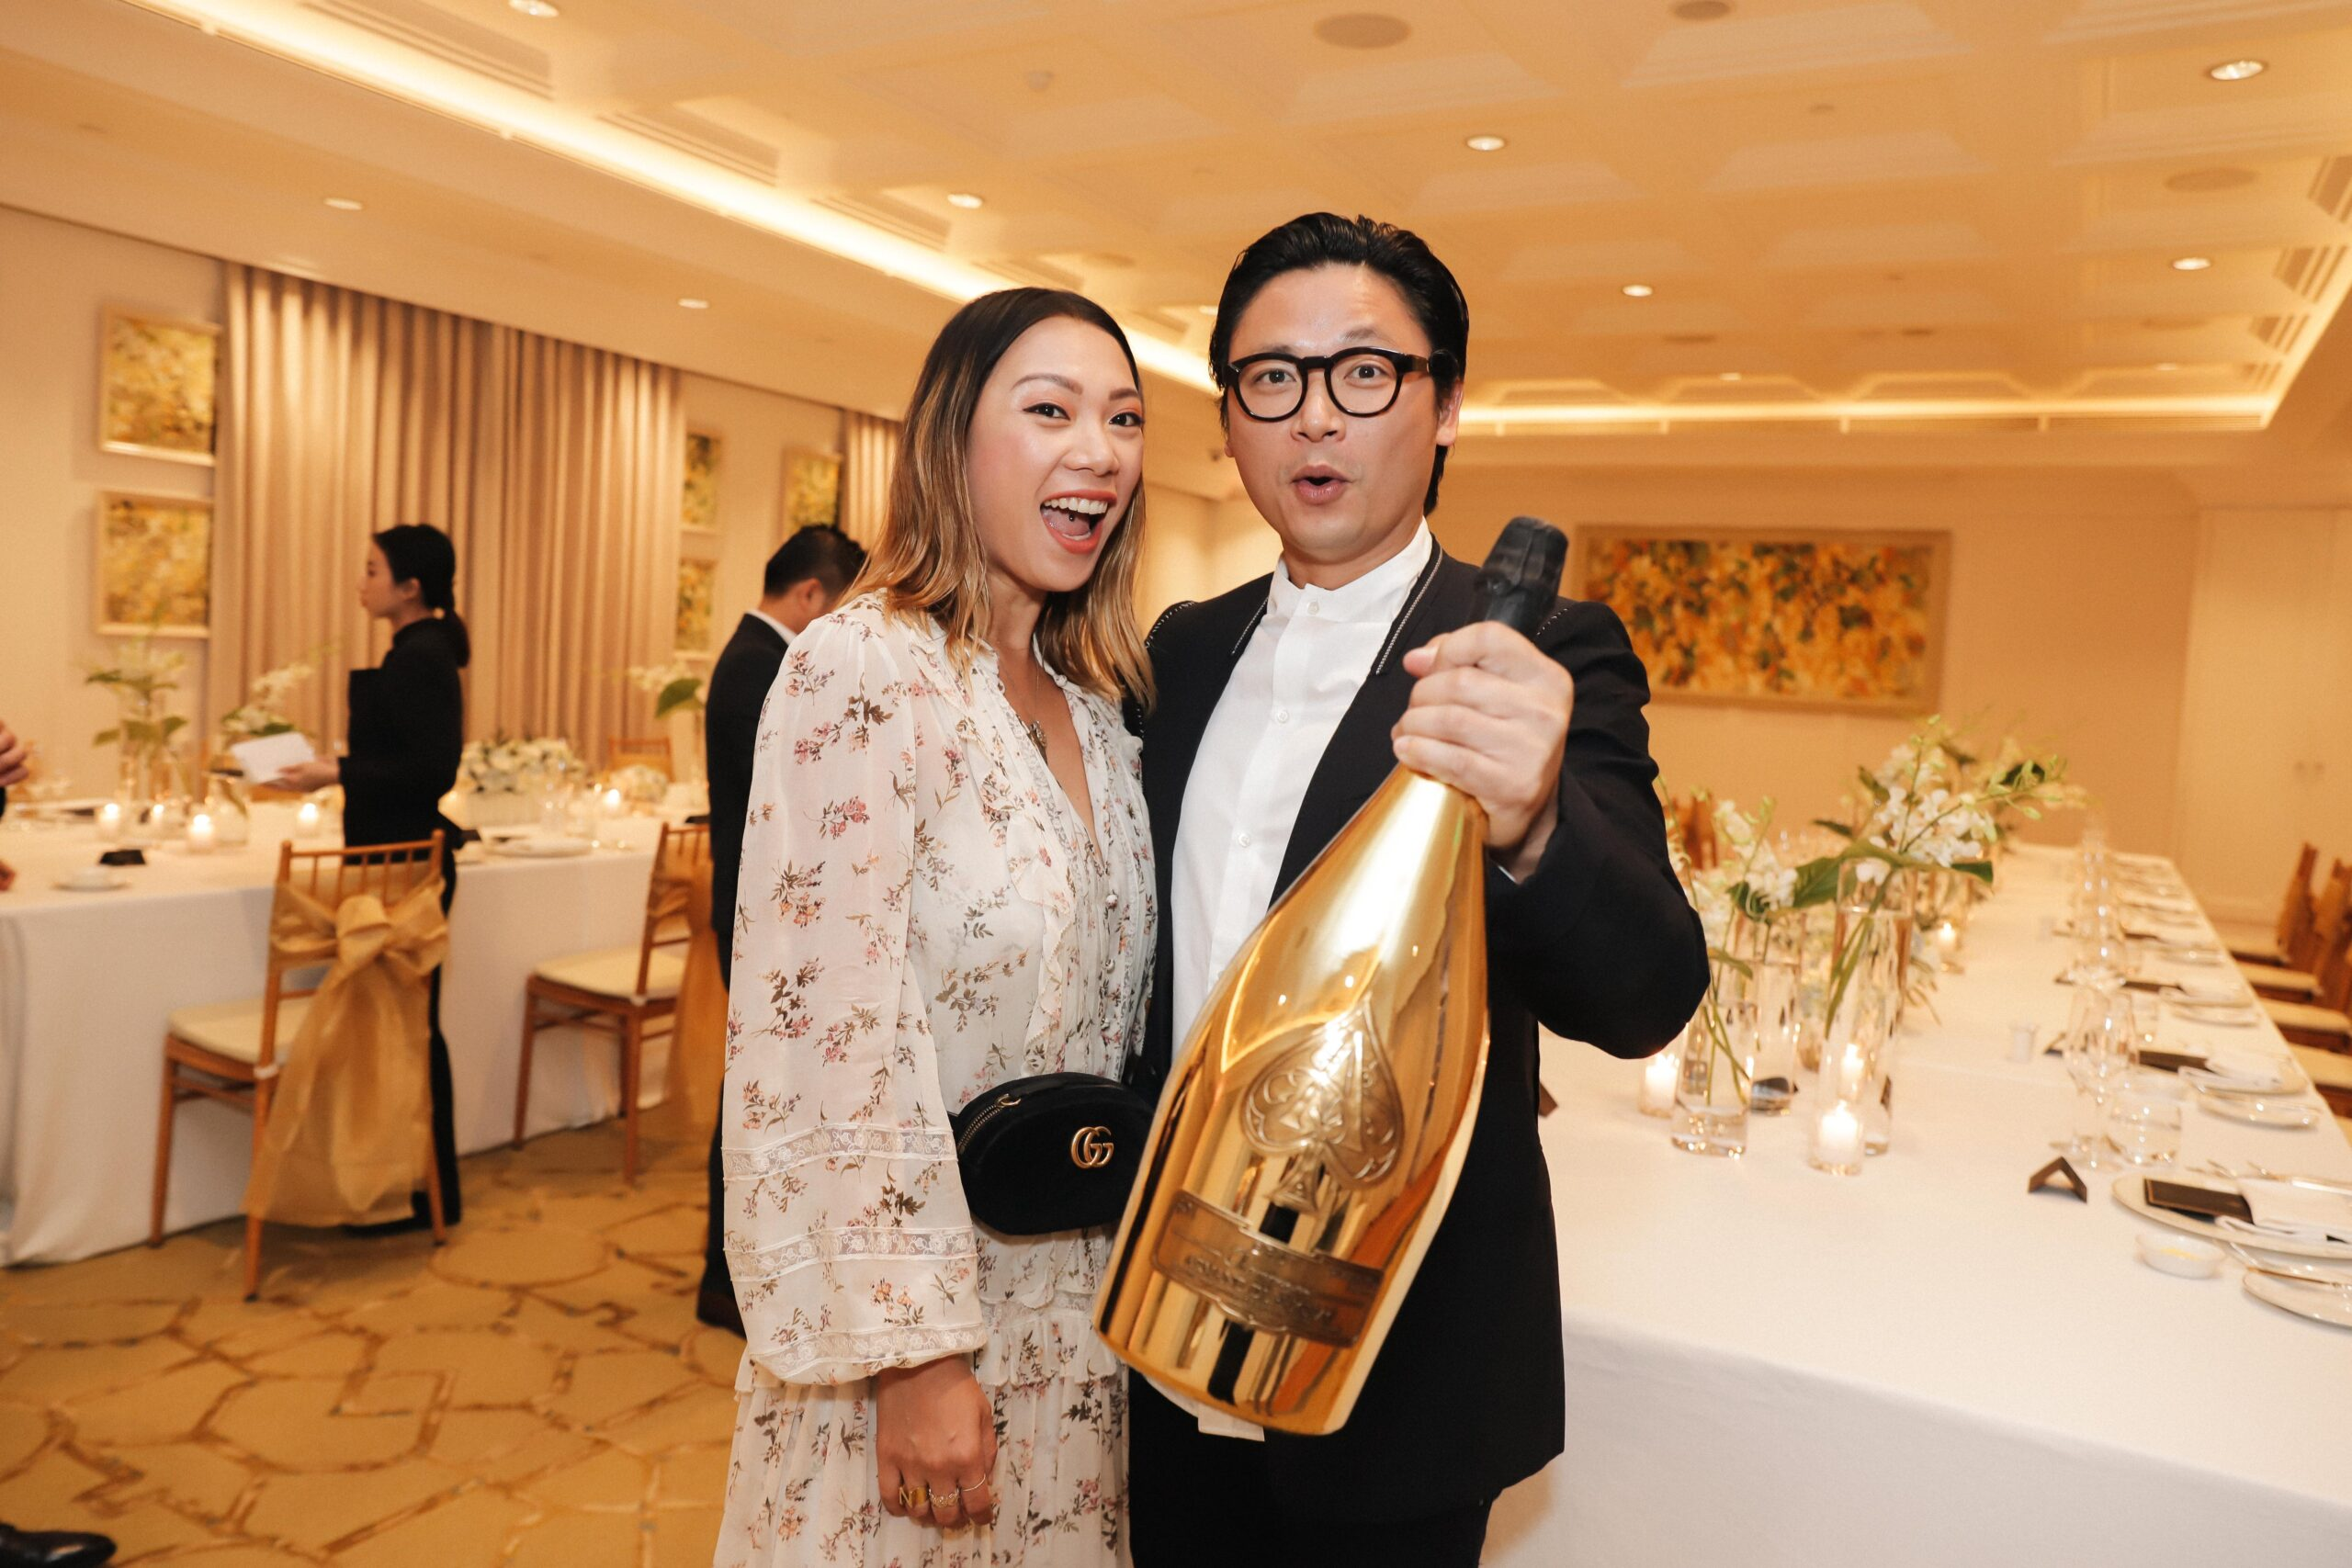 ARMAND DE BRIGNAC CELEBRATES BRAND LAUNCH IN VIETNAM - Armand de Brignac Champagne